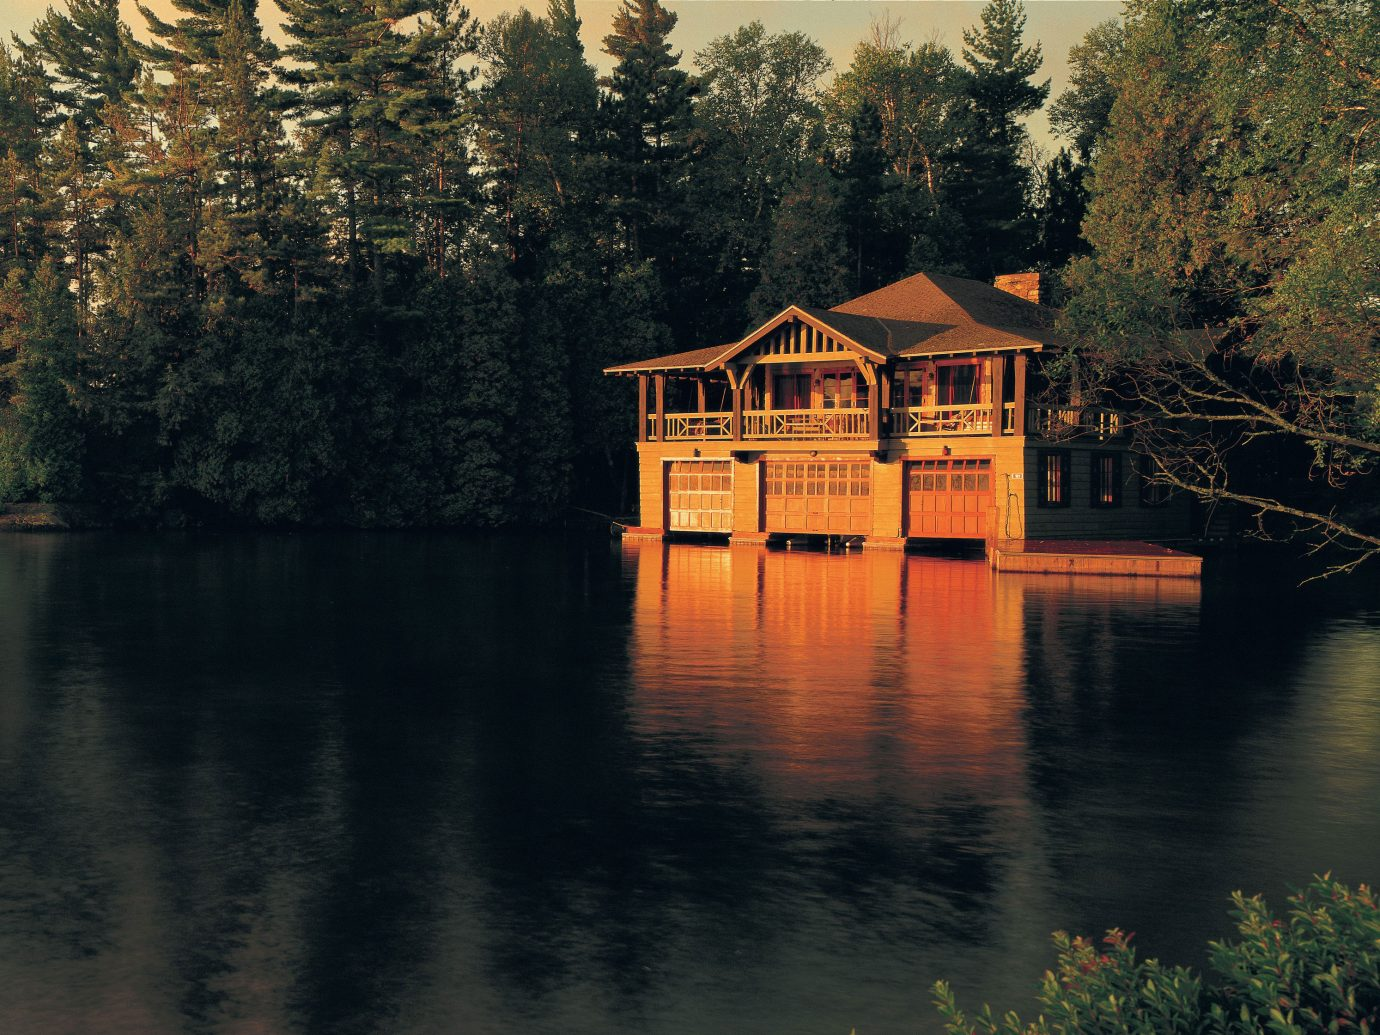 Trip Ideas tree water outdoor house reflection Nature Lake atmospheric phenomenon River night season autumn morning evening leaf bridge château waterway surrounded pond wooded several